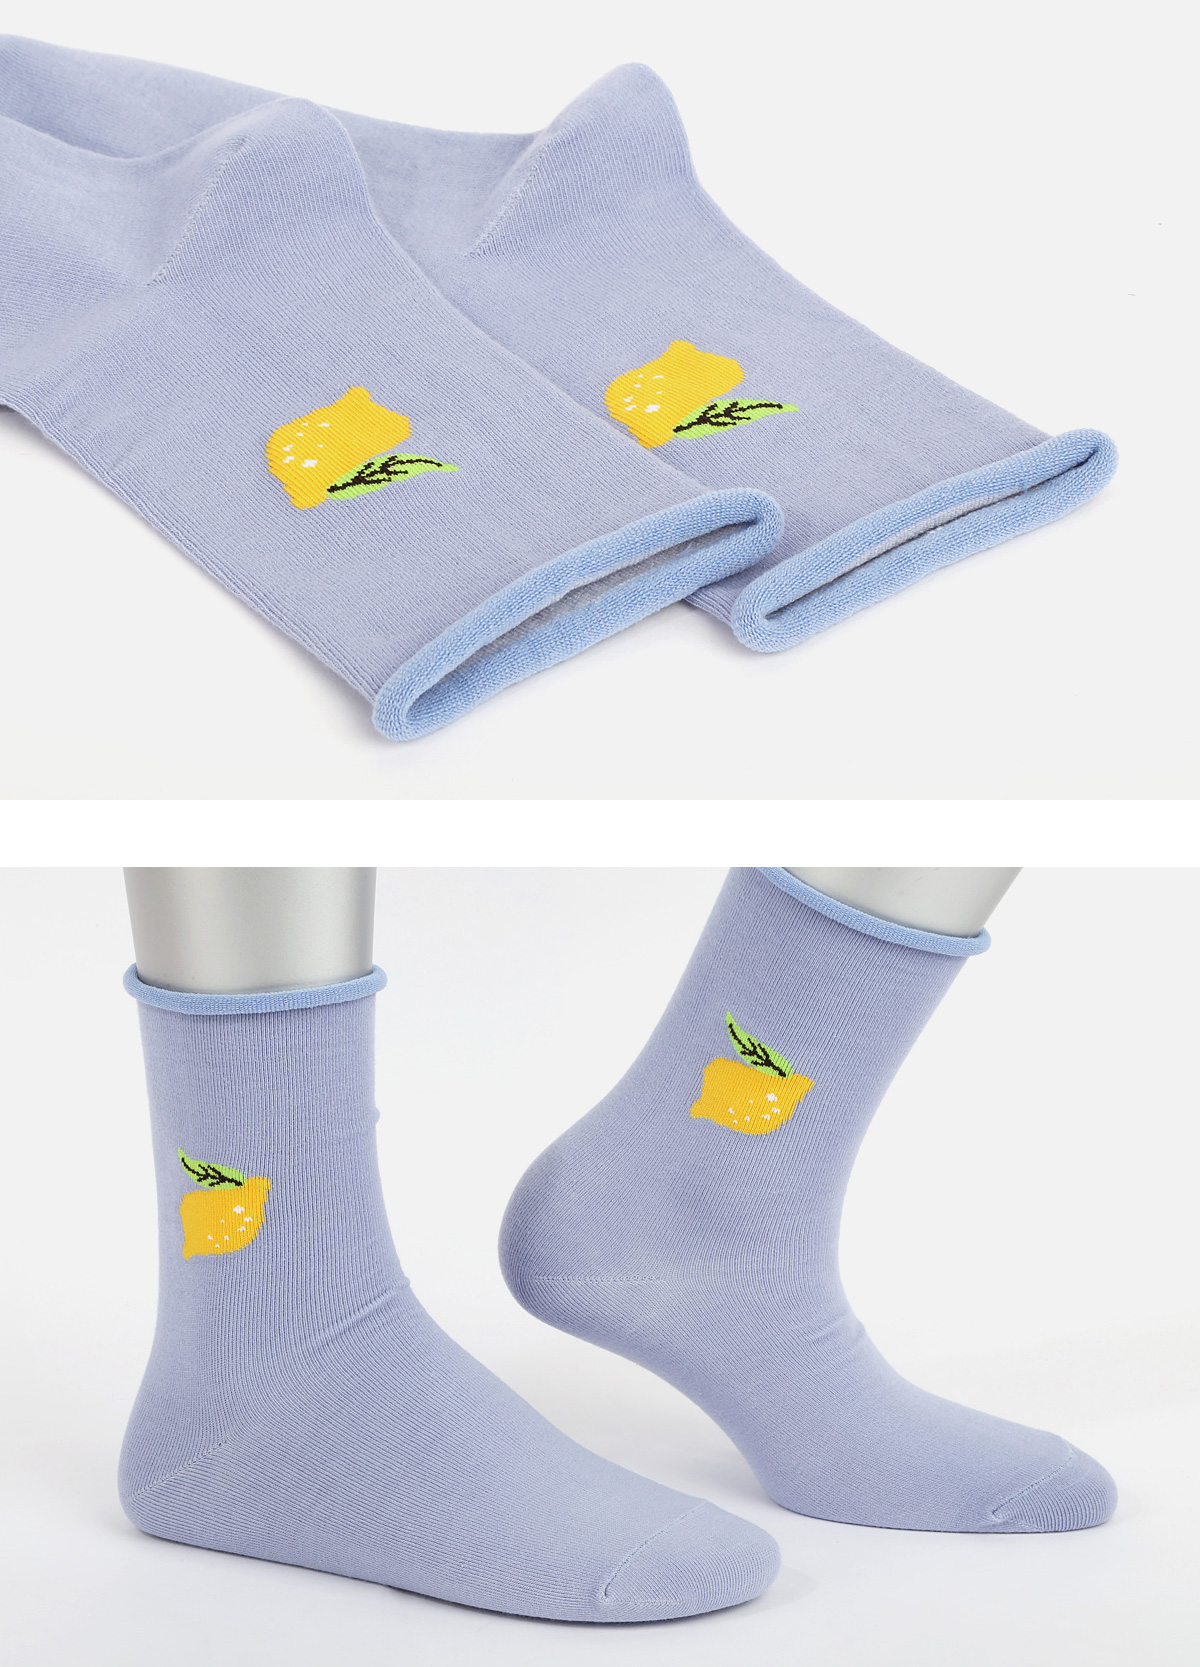 SSTZ ROLLTOP LEMON socks